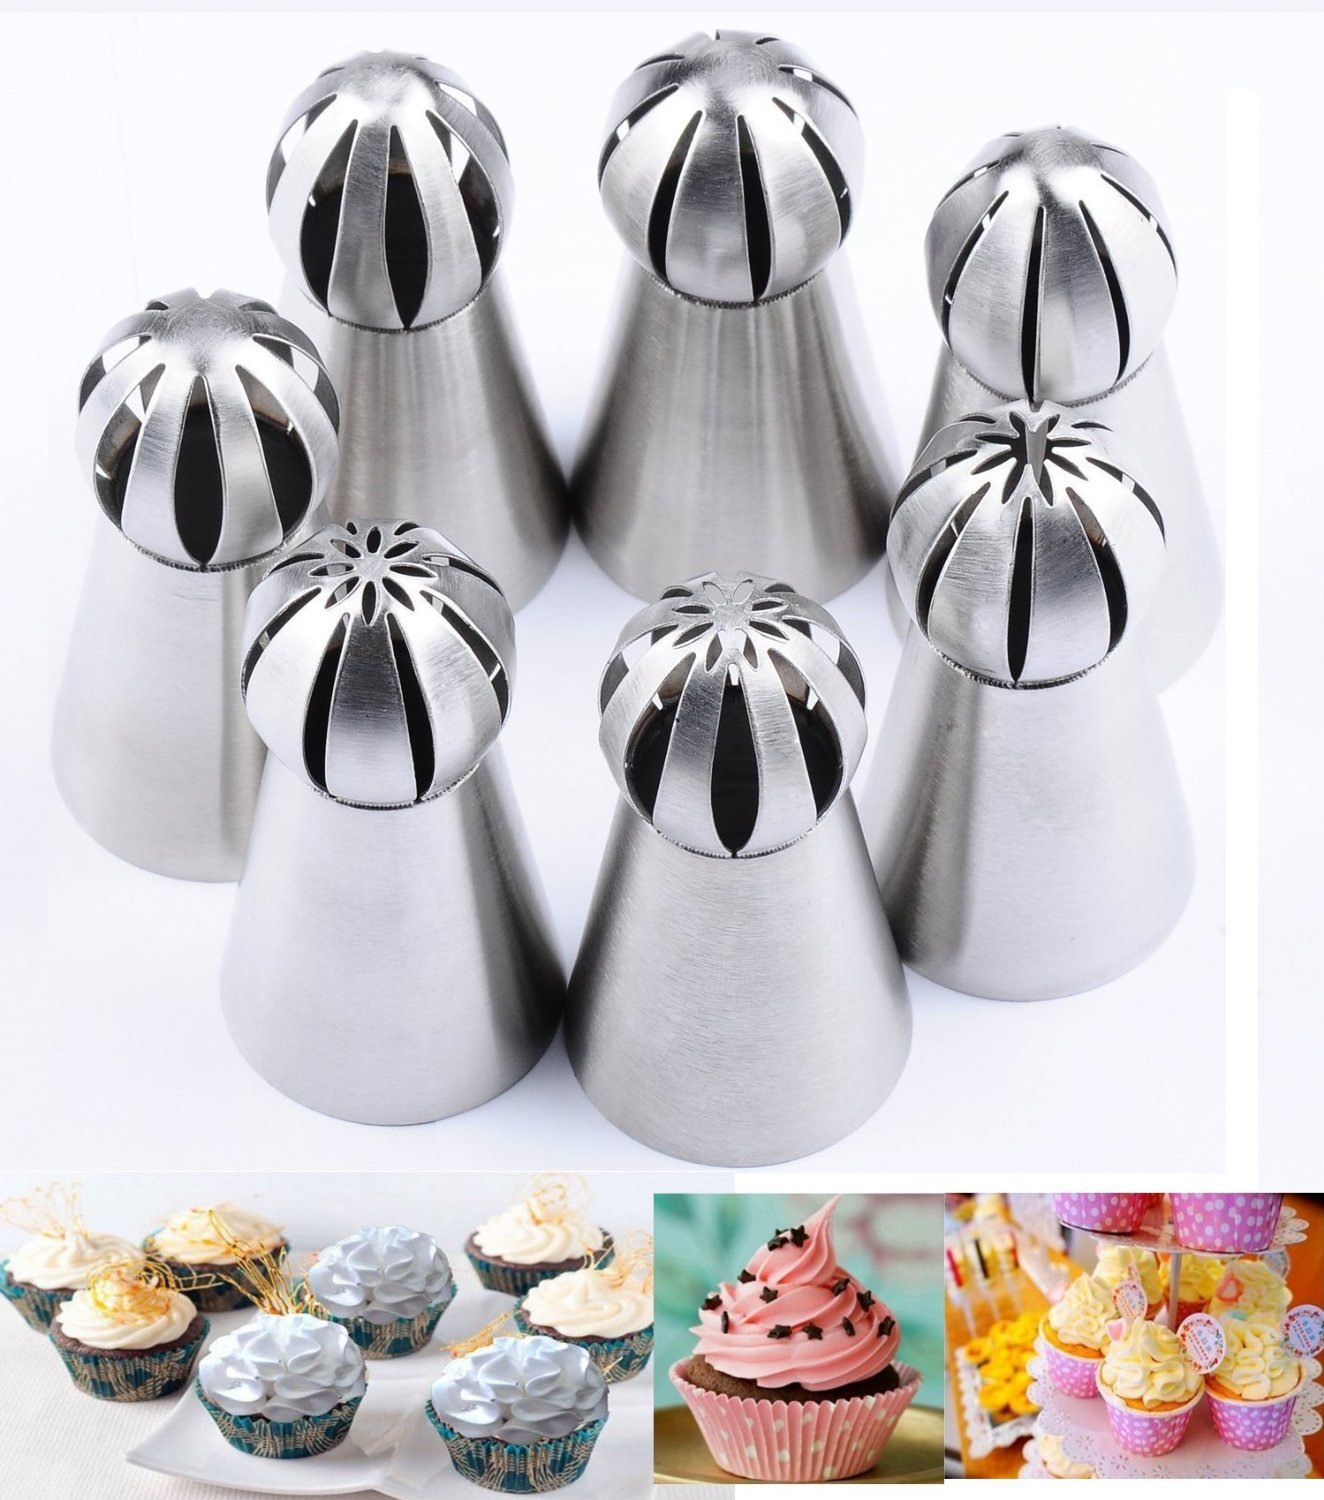 Joinor NEW Version 7pcs Set Stainless Steel Sphere Ball Tips Russian Icing Piping Nozzles Tips Pastry Cake Fondant Cupcake Buttercream DIY Baking Tools